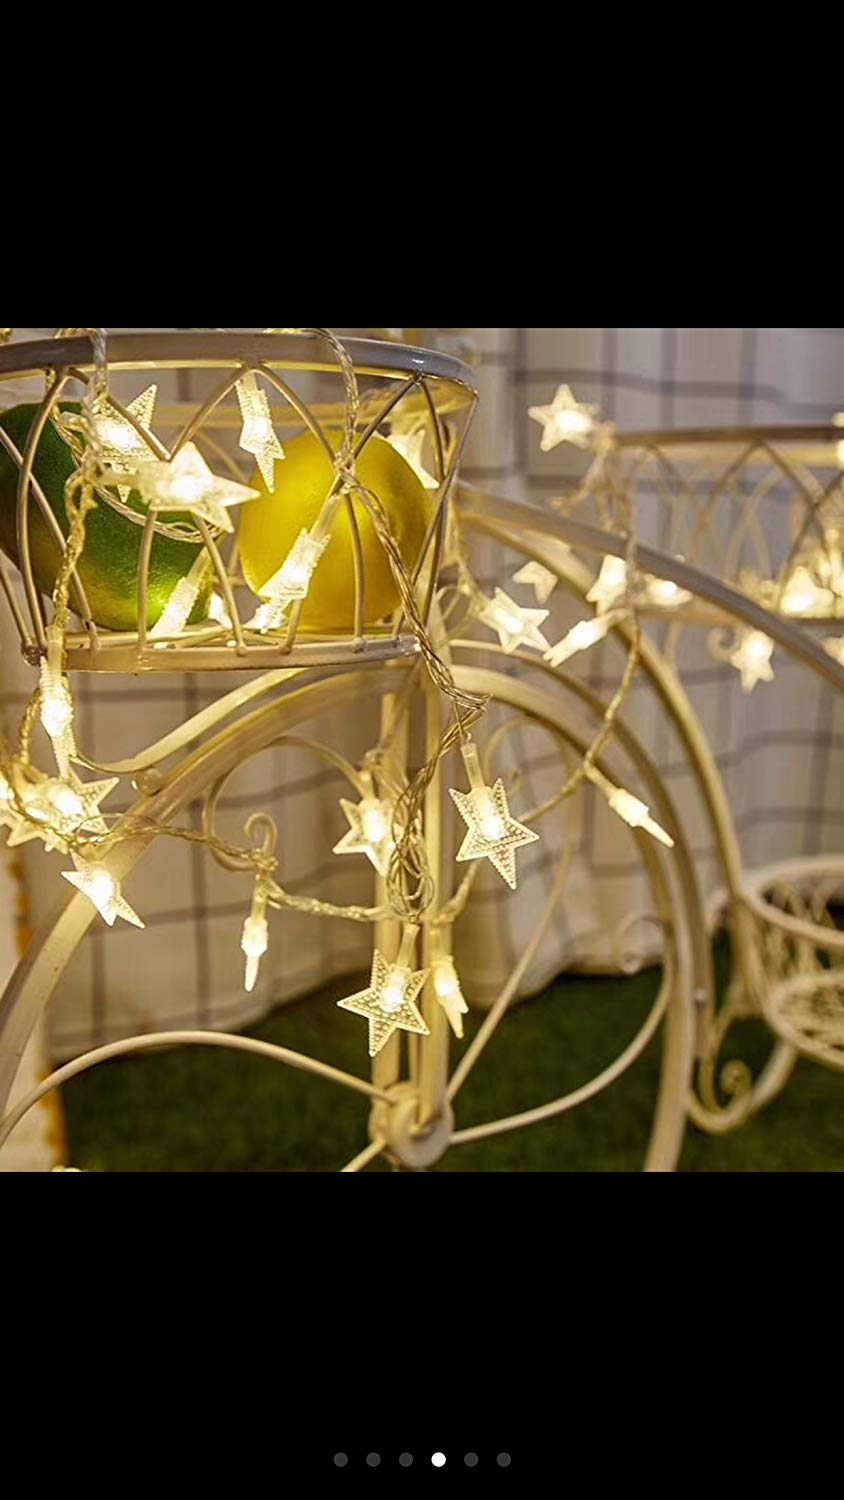 LEITING 10 meters 100 lights five pointed star decoration warm white solar LED outdoor lamp string decorative lamp Pentagram lamp